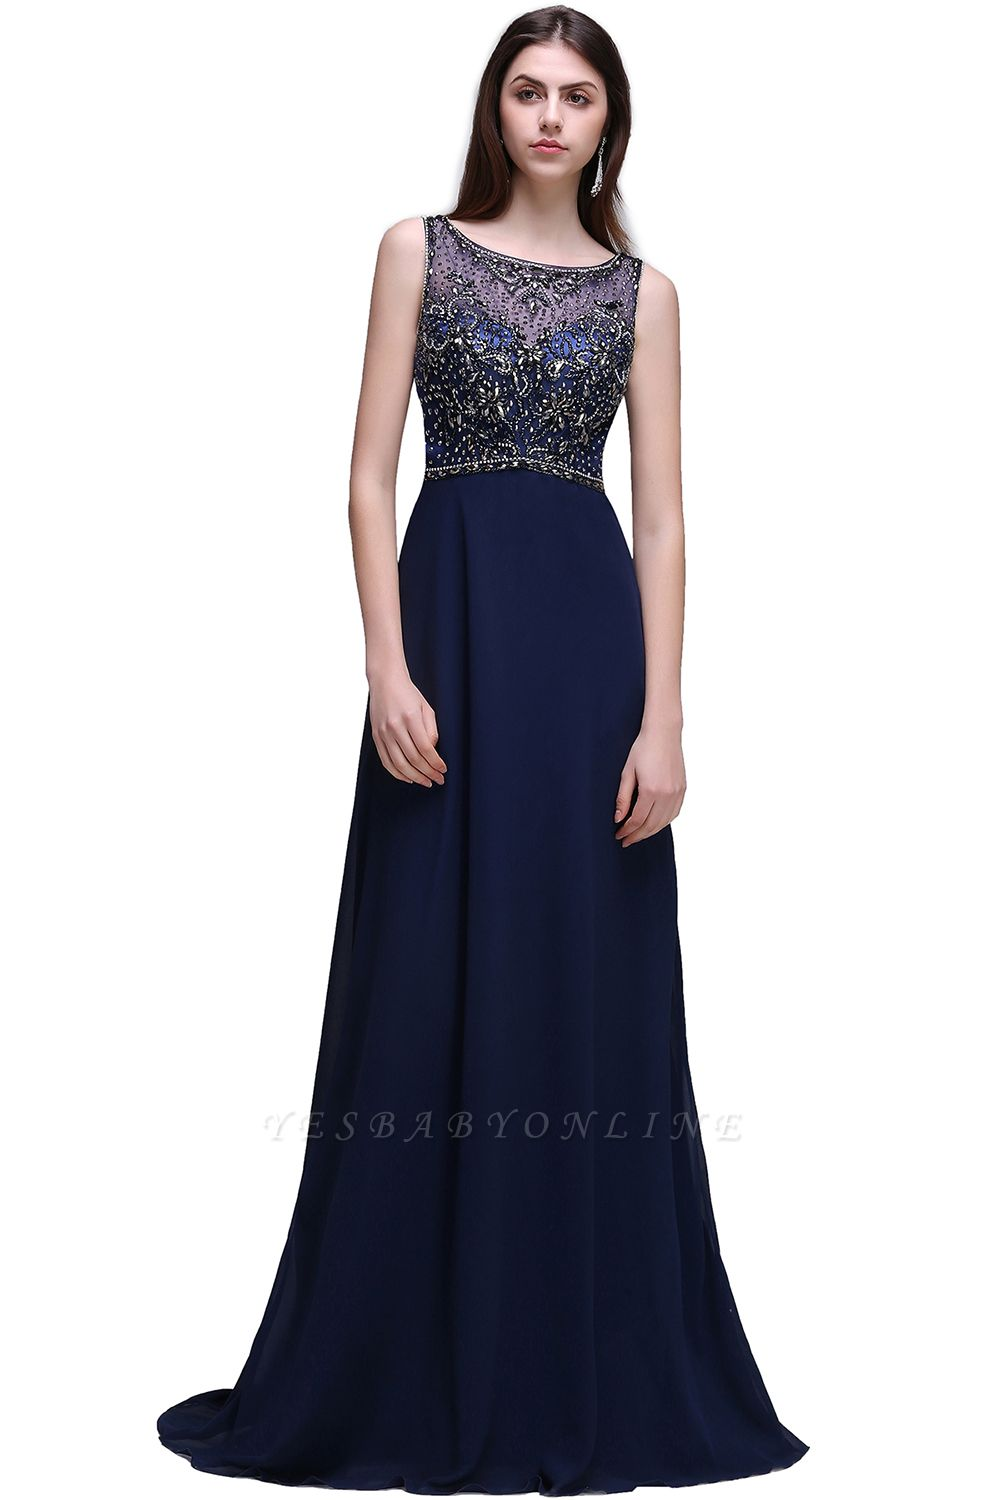 A-line Long Chiffon Dark Navy Vintage Prom Dresses with Rhinestones